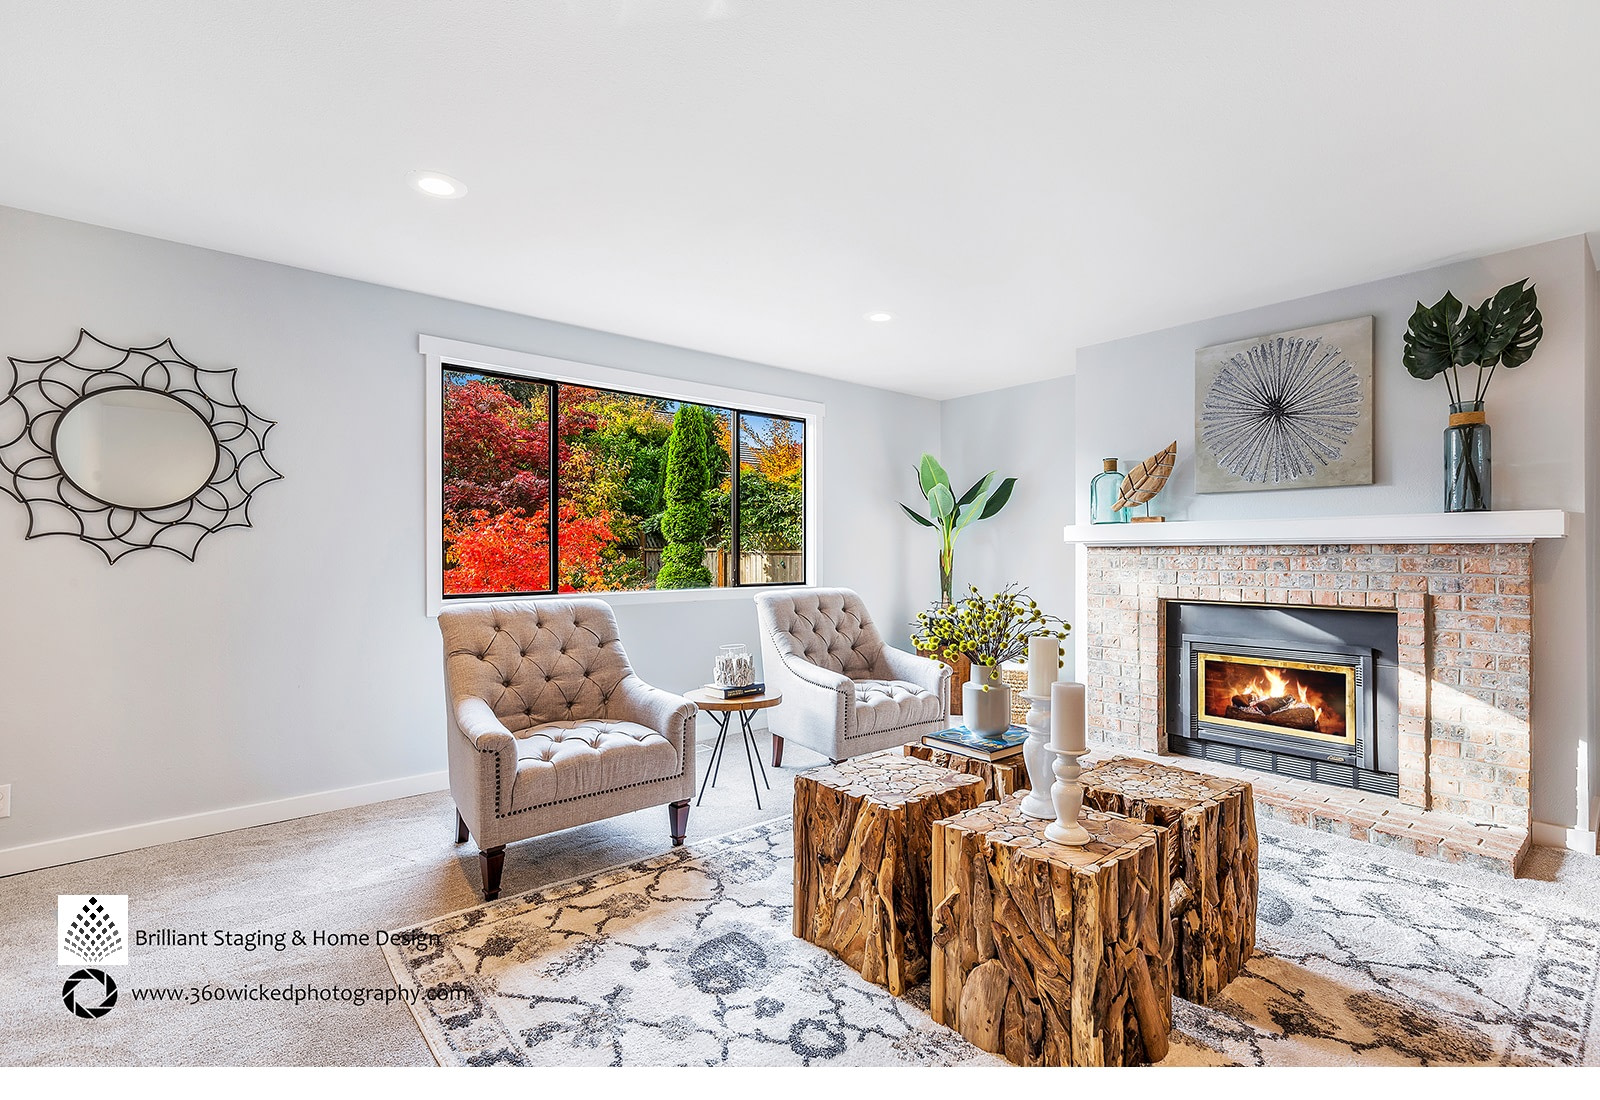 Home staging by brilliant staging $ design